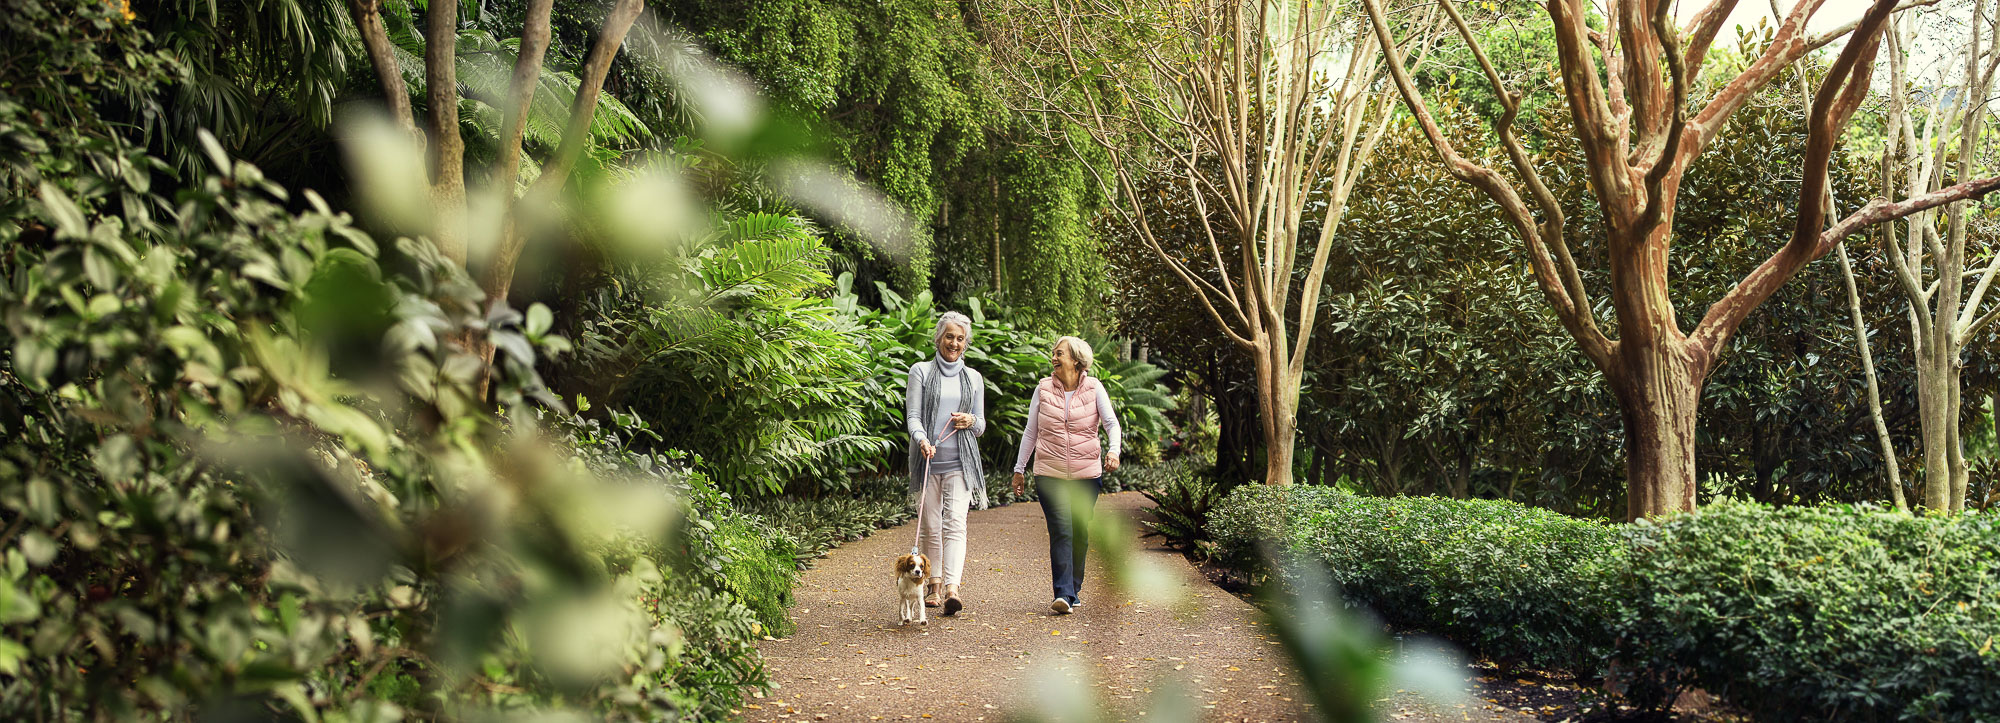 Two women walking a dog during a photography campaign for a retirement company